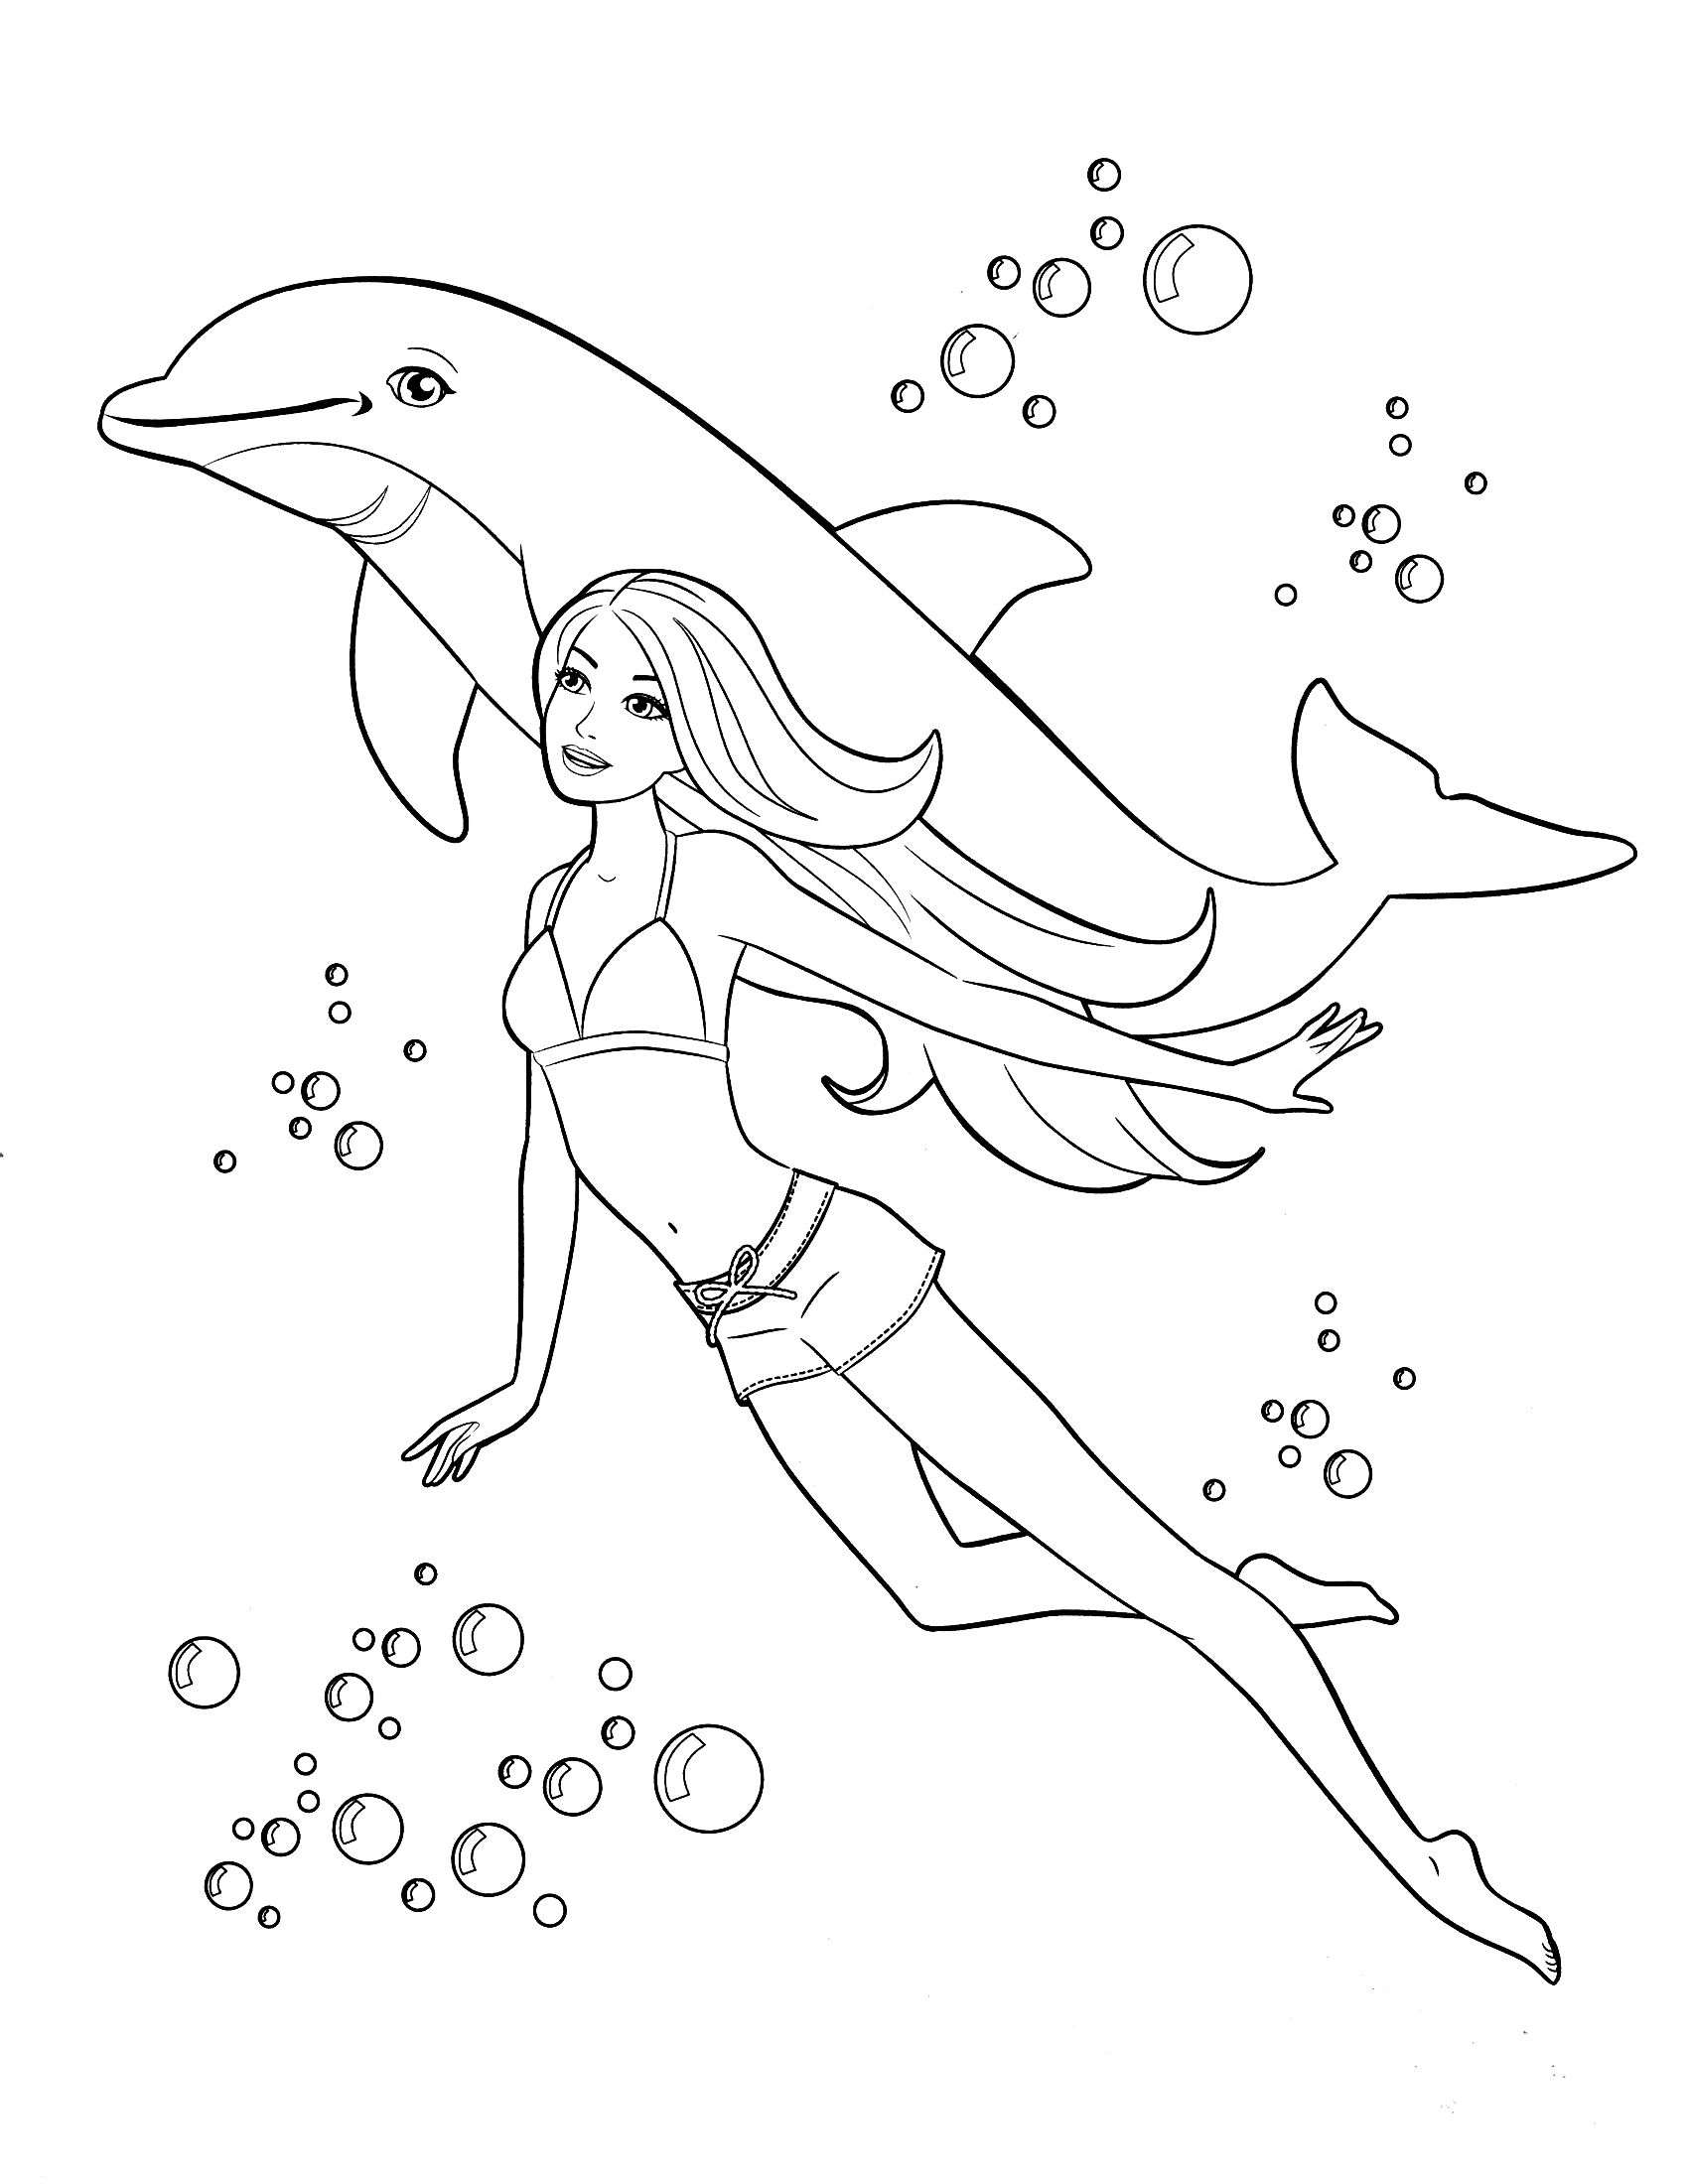 Free Printable Barbie Swimming With Dolphin Coloring Page For Kids Barbie Coloring Pages Dolphin Coloring Pages Princess Coloring Pages